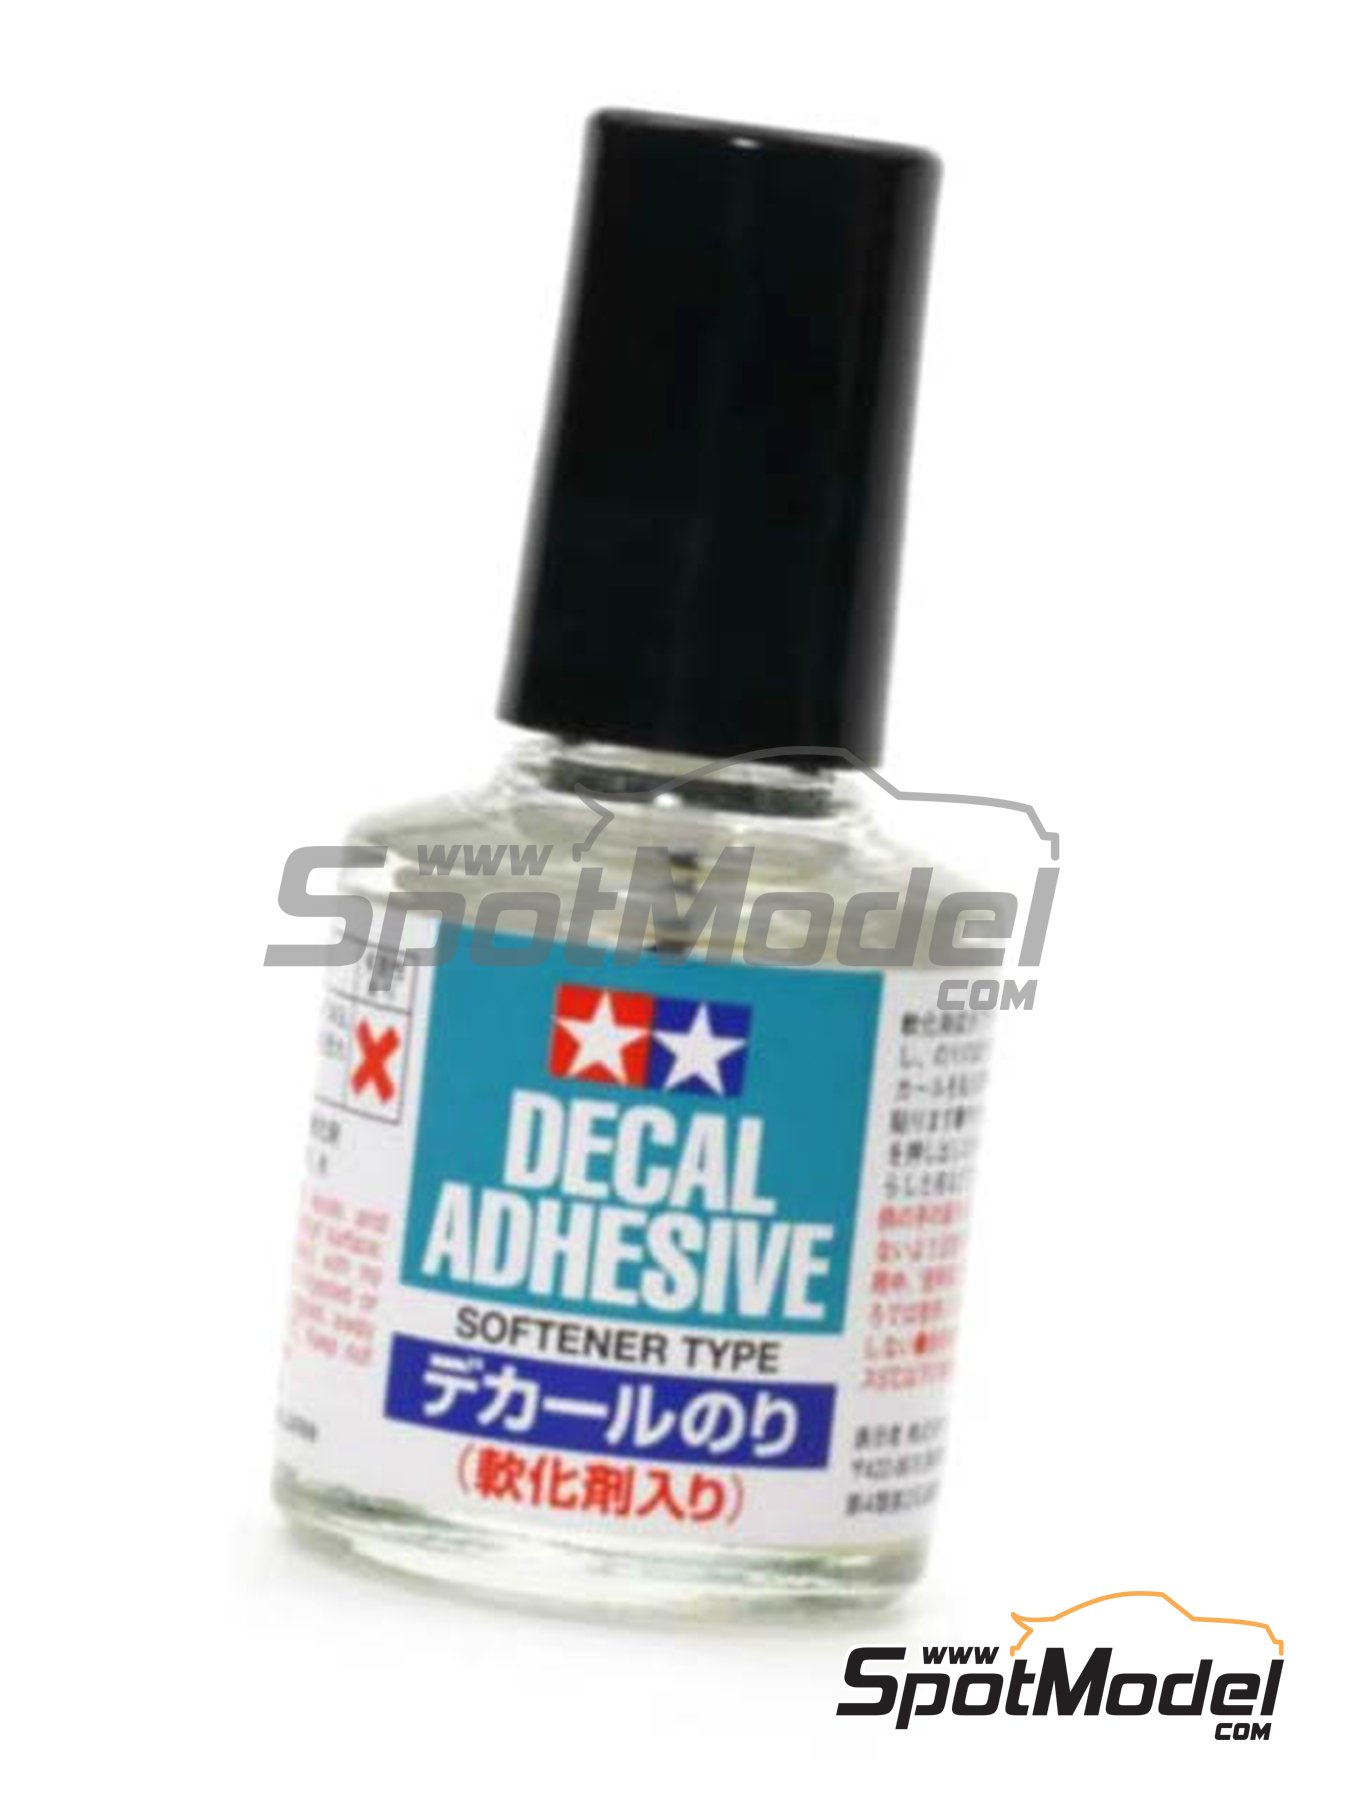 Decal Adhesive Softener Type - 10ml | Decal products manufactured by Tamiya (ref. TAM87193) image